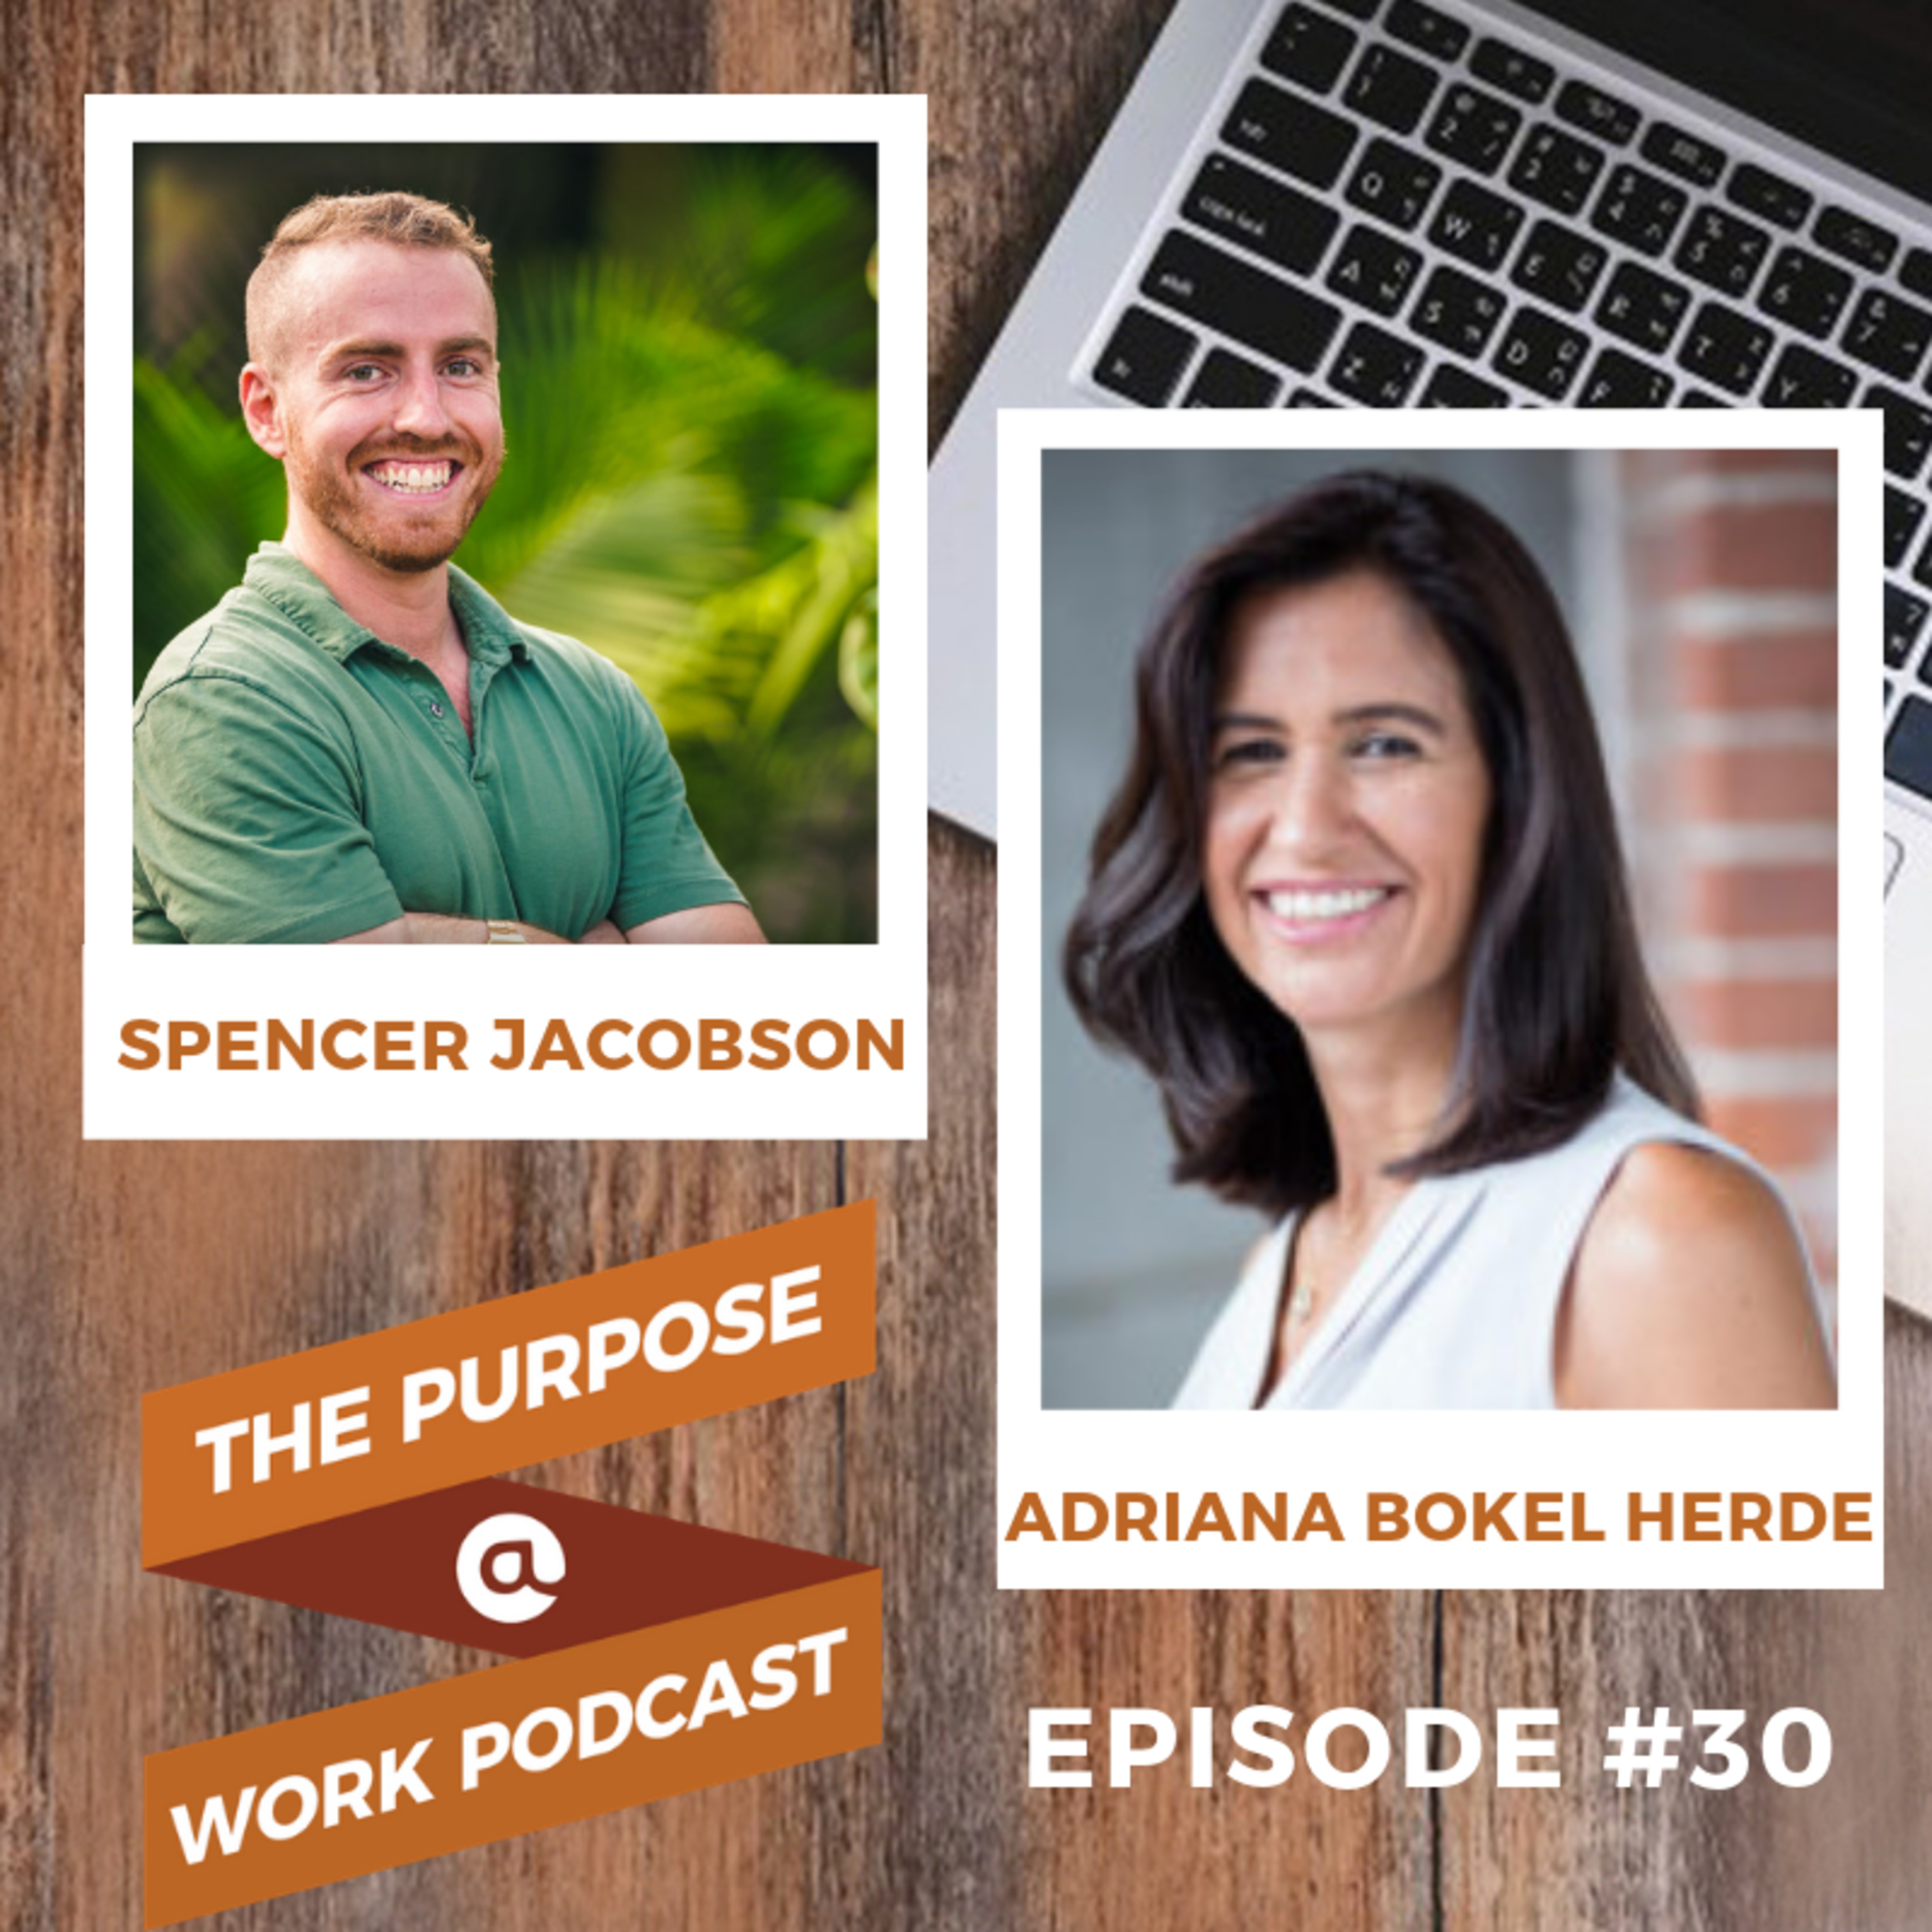 #30 Adriana Bokel Herde - CPO at Pegasystems: Resilience, Adventure and Leadership